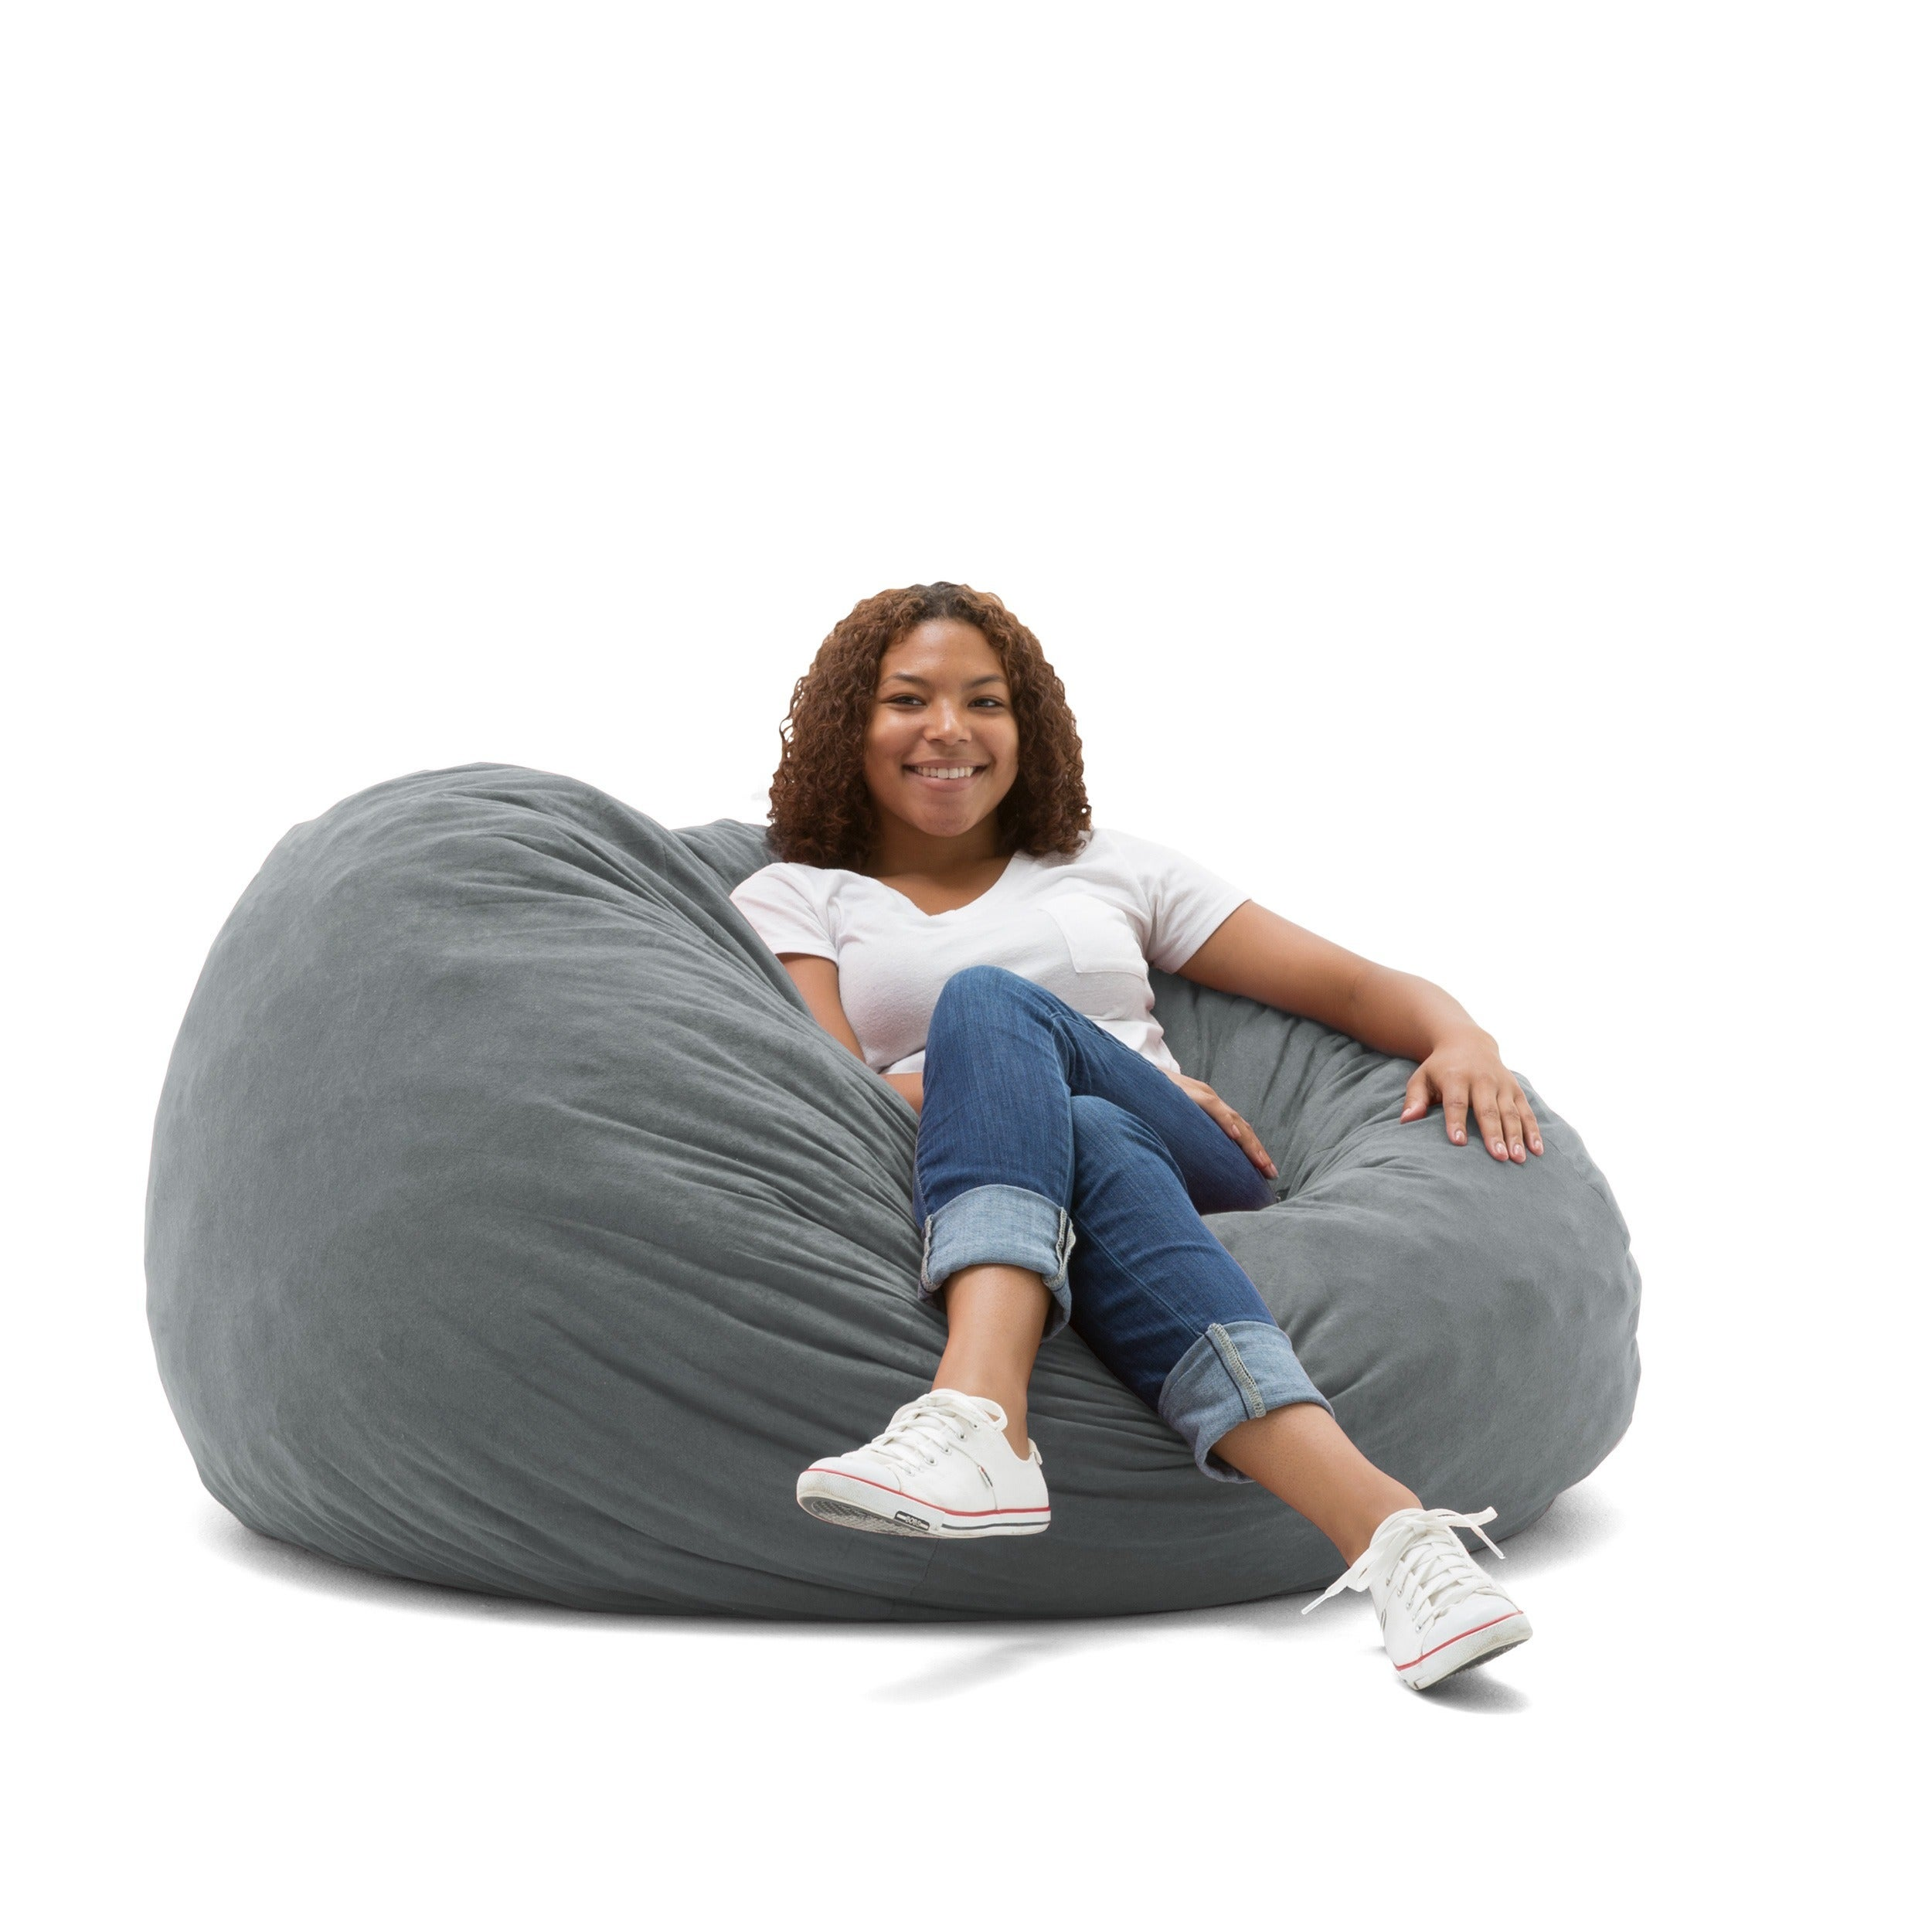 FufSack 4 Foot Large Memory Foam/ Microfiber Bean Bag Chair   Free Shipping  Today   Overstock   16076148